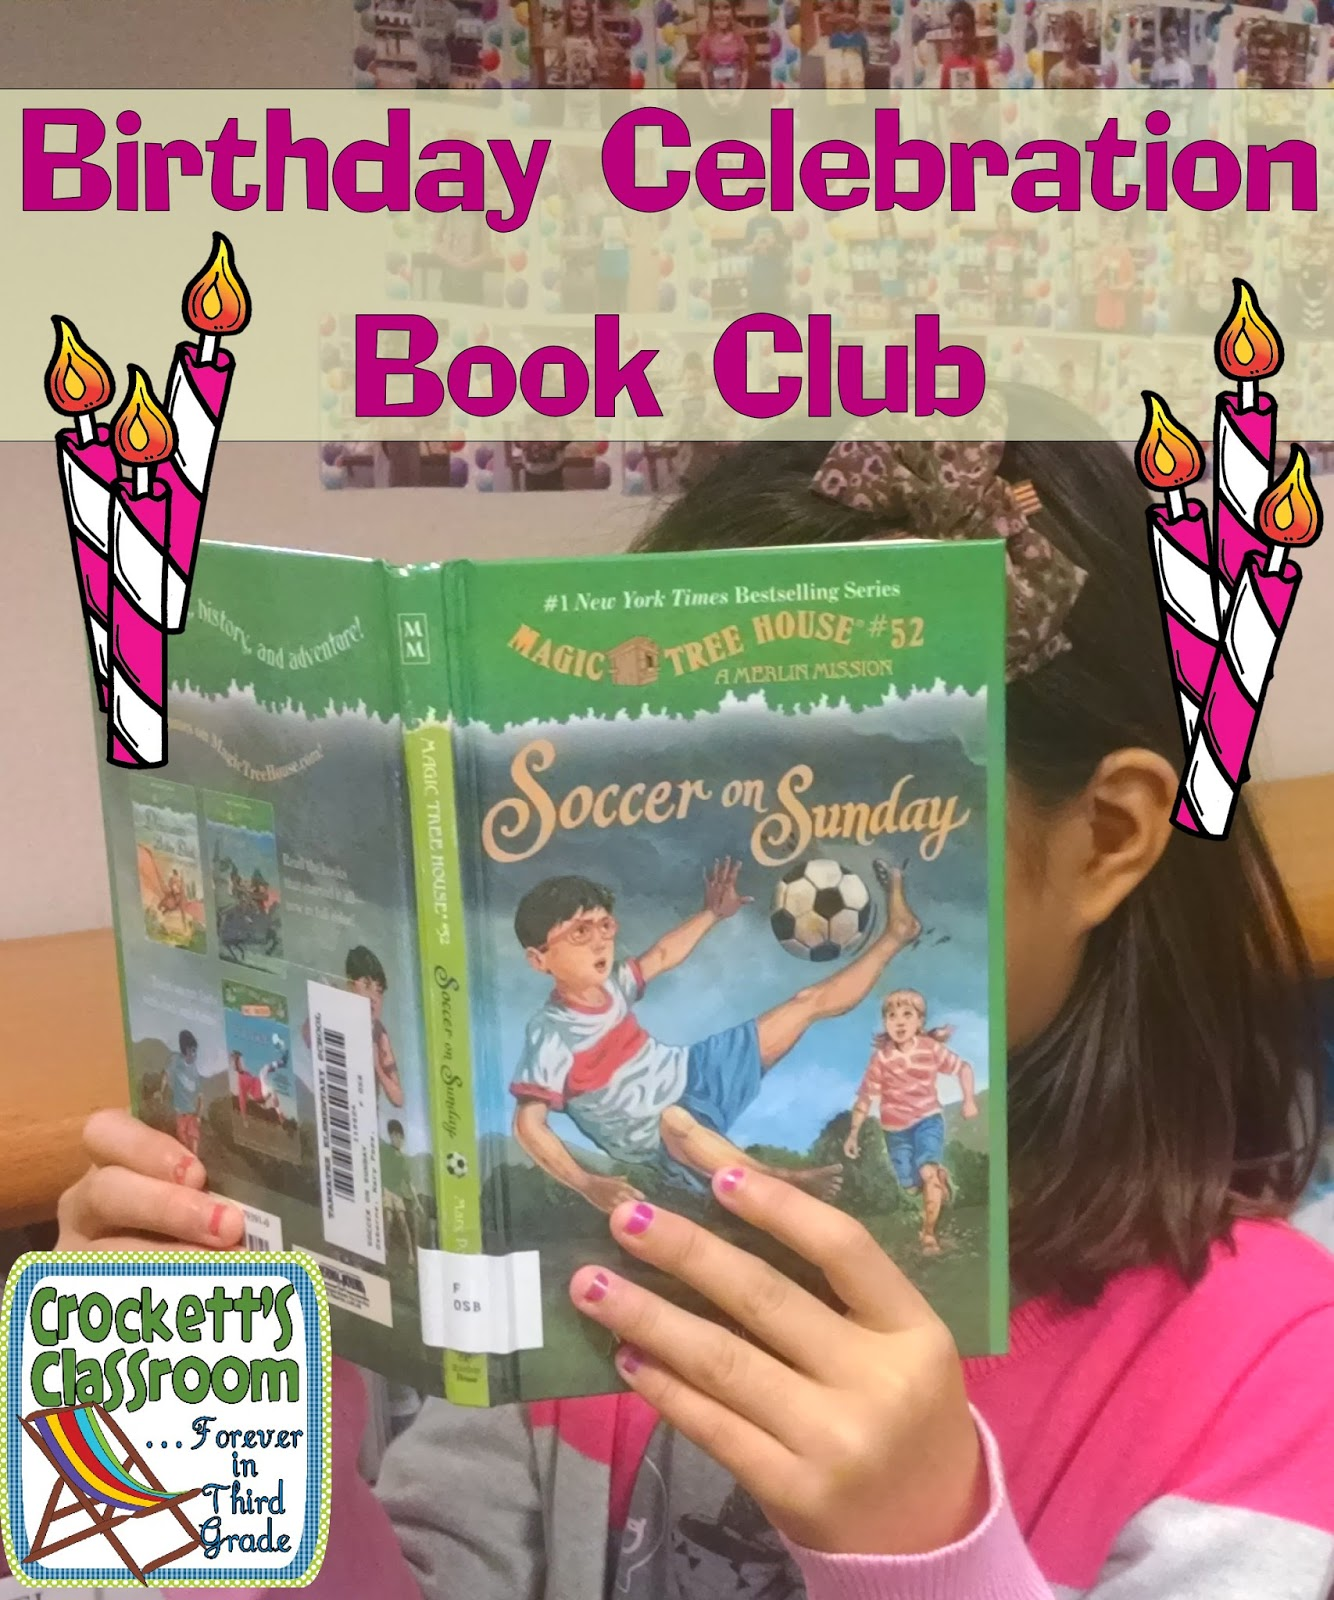 Birthday book club, this is a great way for kids to celebrate their birthday and add books to your library!